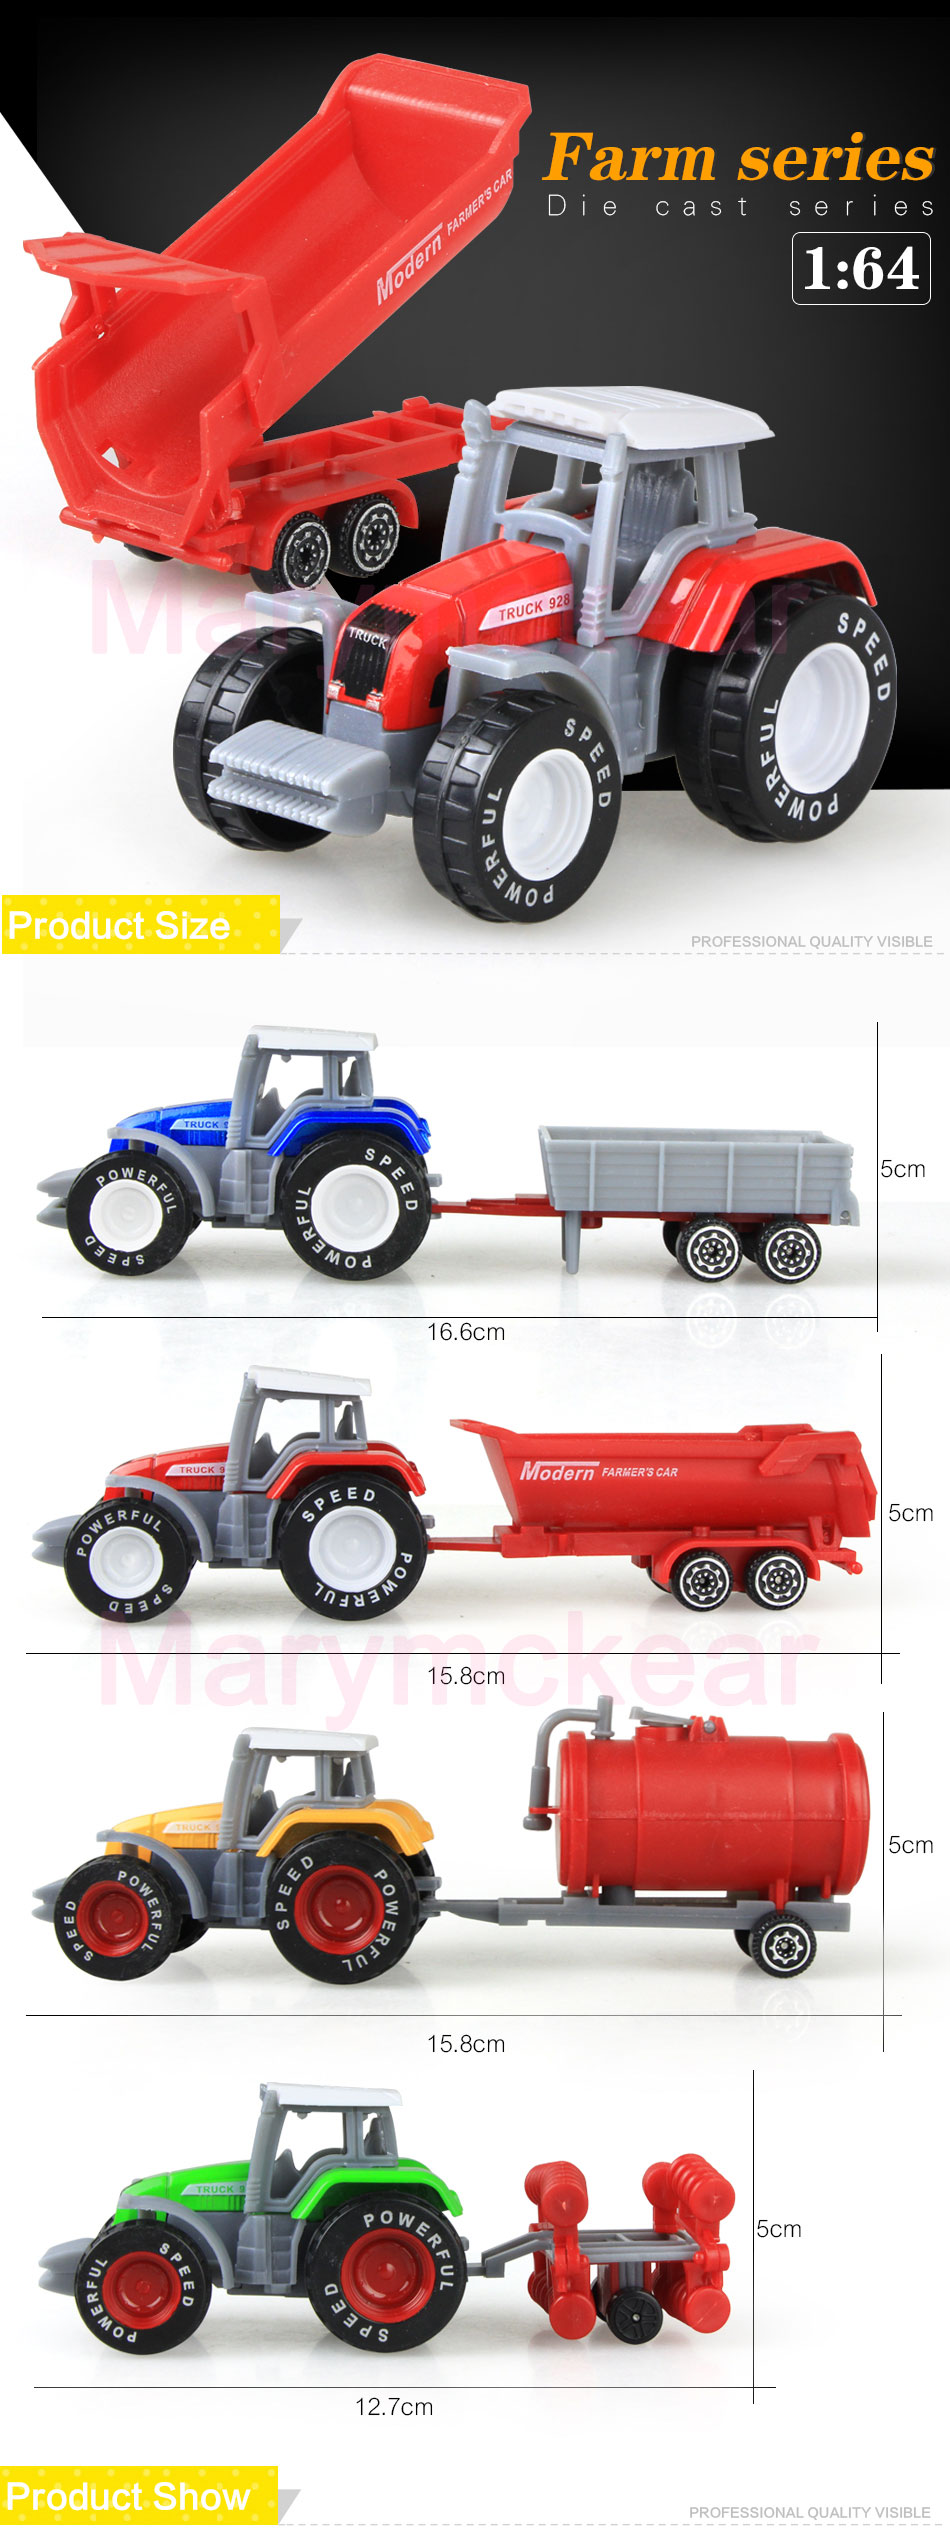 1 pcs Tractor Toy Farmer Mini Car Model Pickup in 4 Colors Tractor Juguete Detachable Diecast Truck Toy